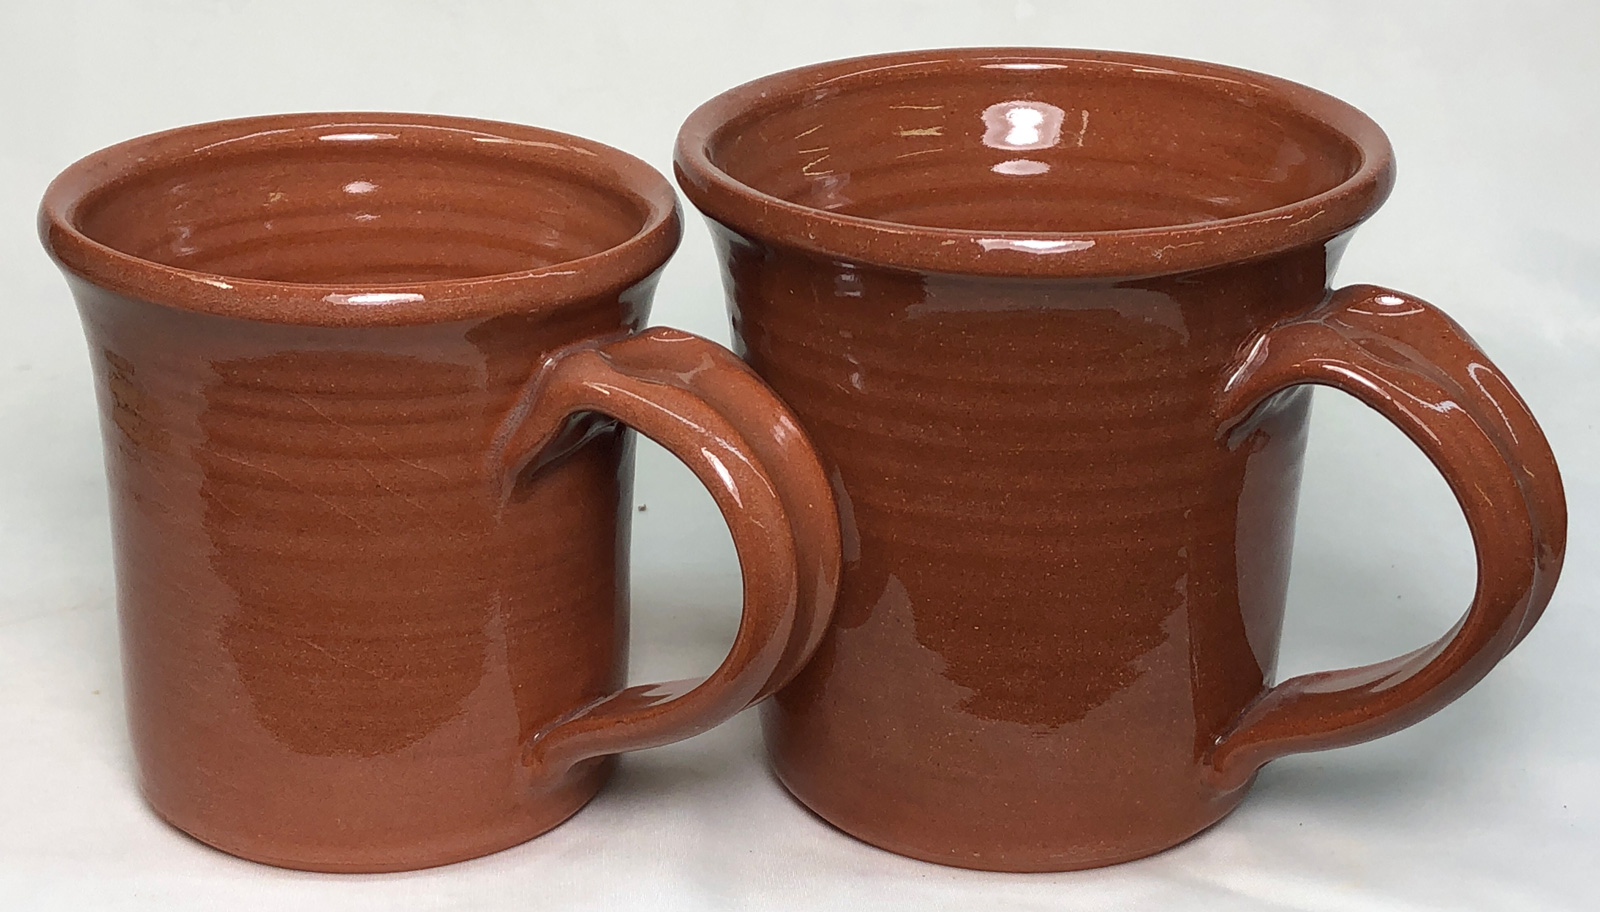 Two terra cotta mugs, the glaze on one is more glossy and the body color is richer